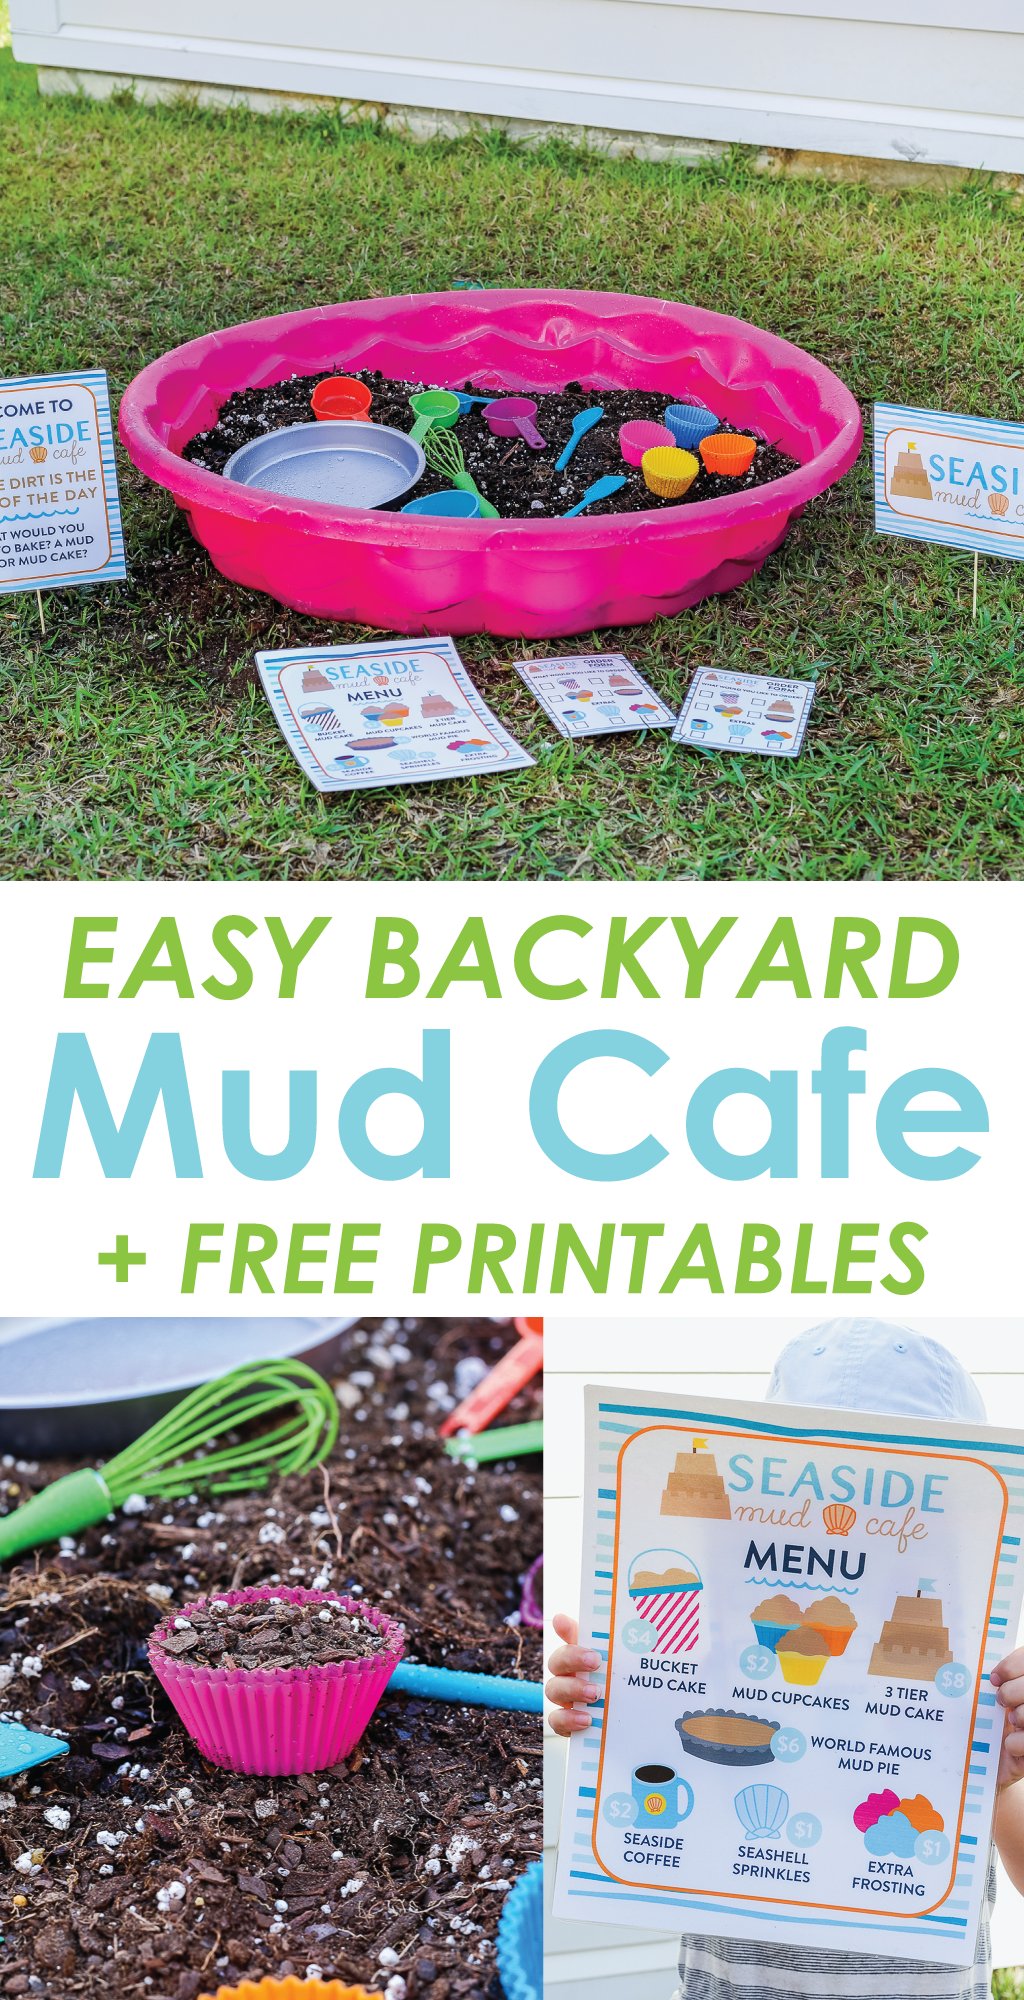 Backyard Mud Cafe: An Easy Outdoor Imaginative Play Idea for Kids images